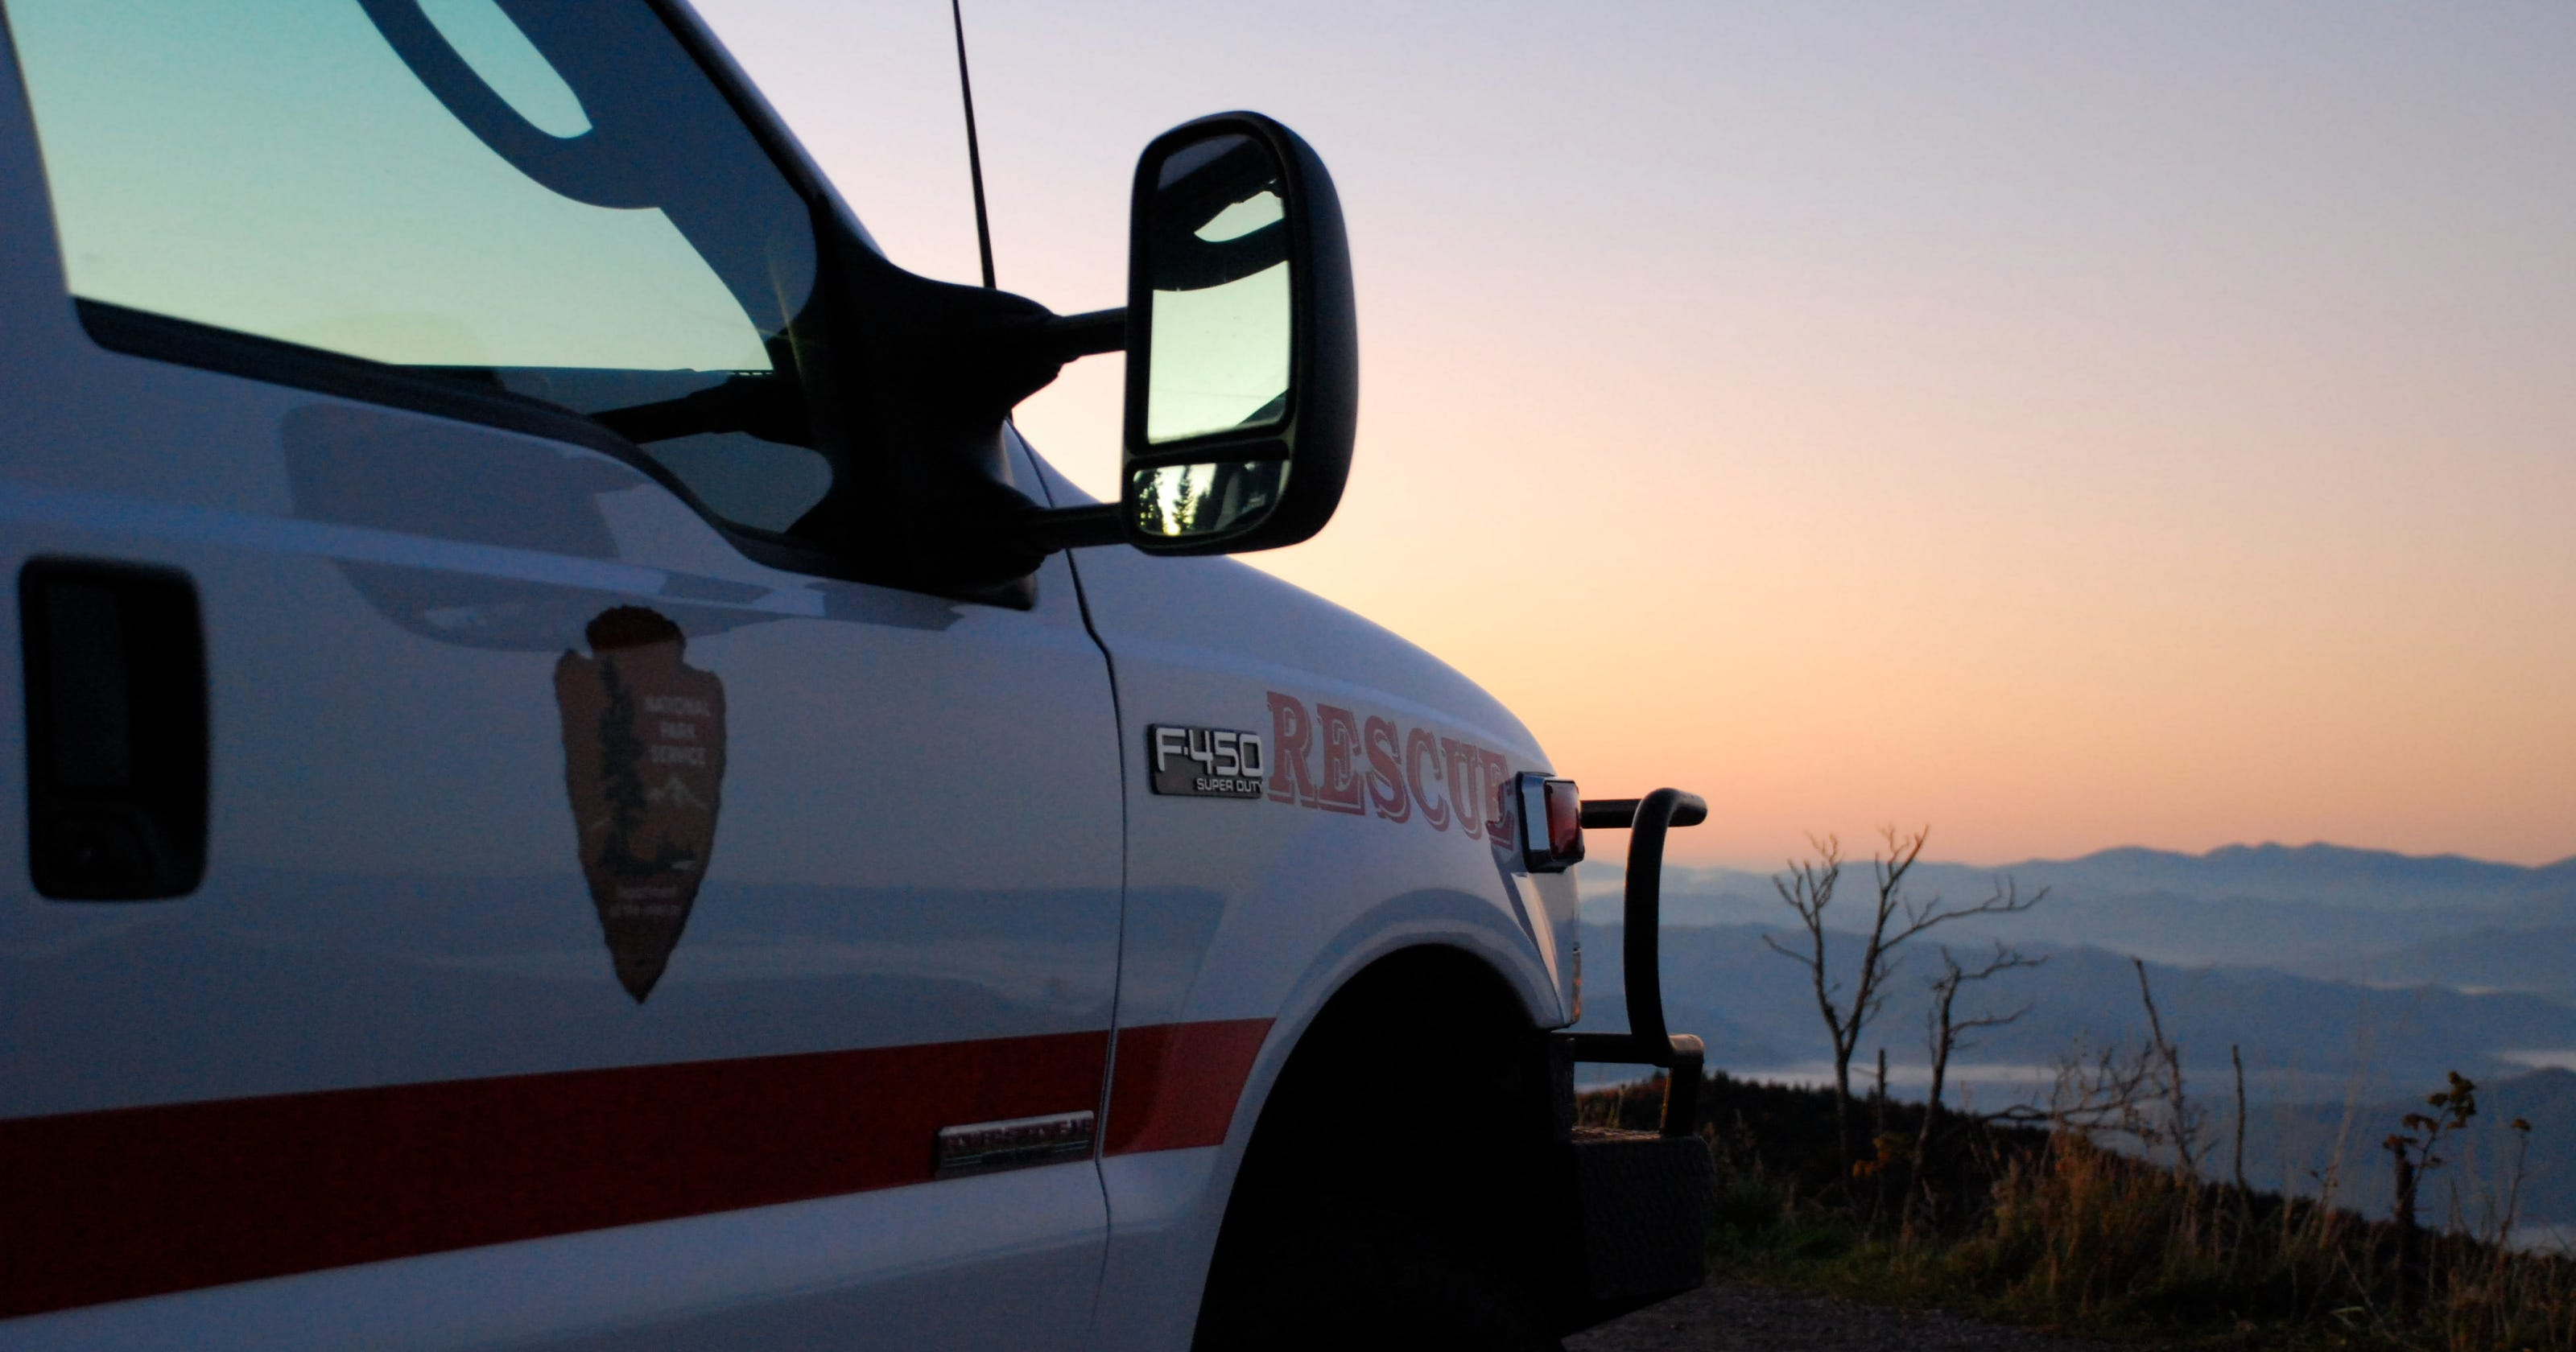 Woman dies in car accident near Clingmans Dome in Smokies